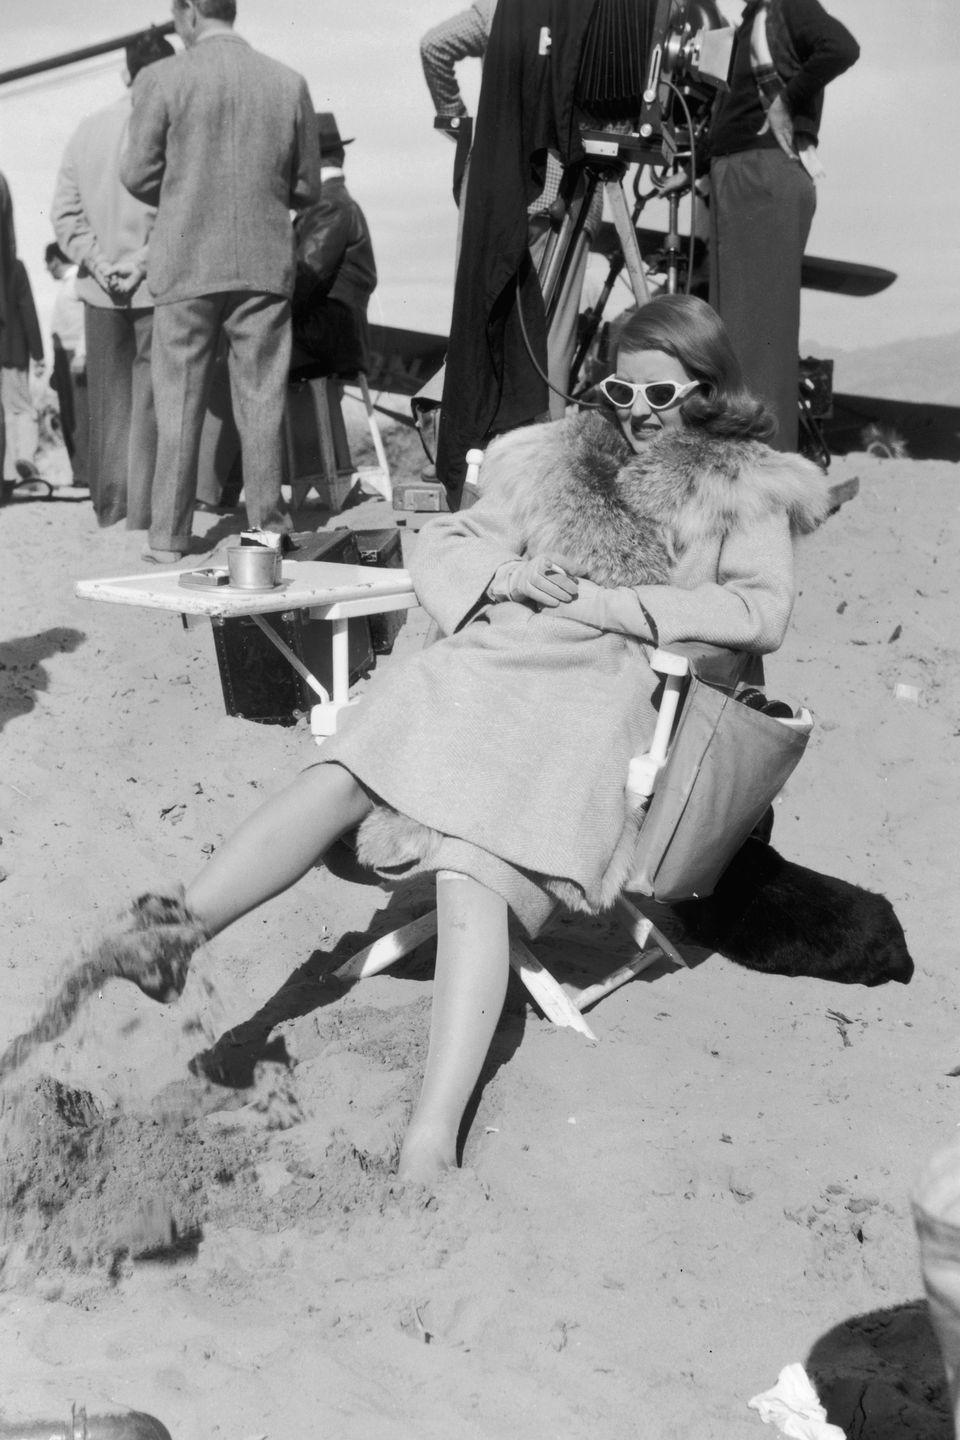 <p> Bette Davis sinks her feet into the sand as she takes a break while filming a scene in Death Valley, California for <em>The Bridge Came C.O.D. </em>in 1941. The actress wasn't exactly dressed appropriately for the beach in her fur-trimmed jacket.</p>